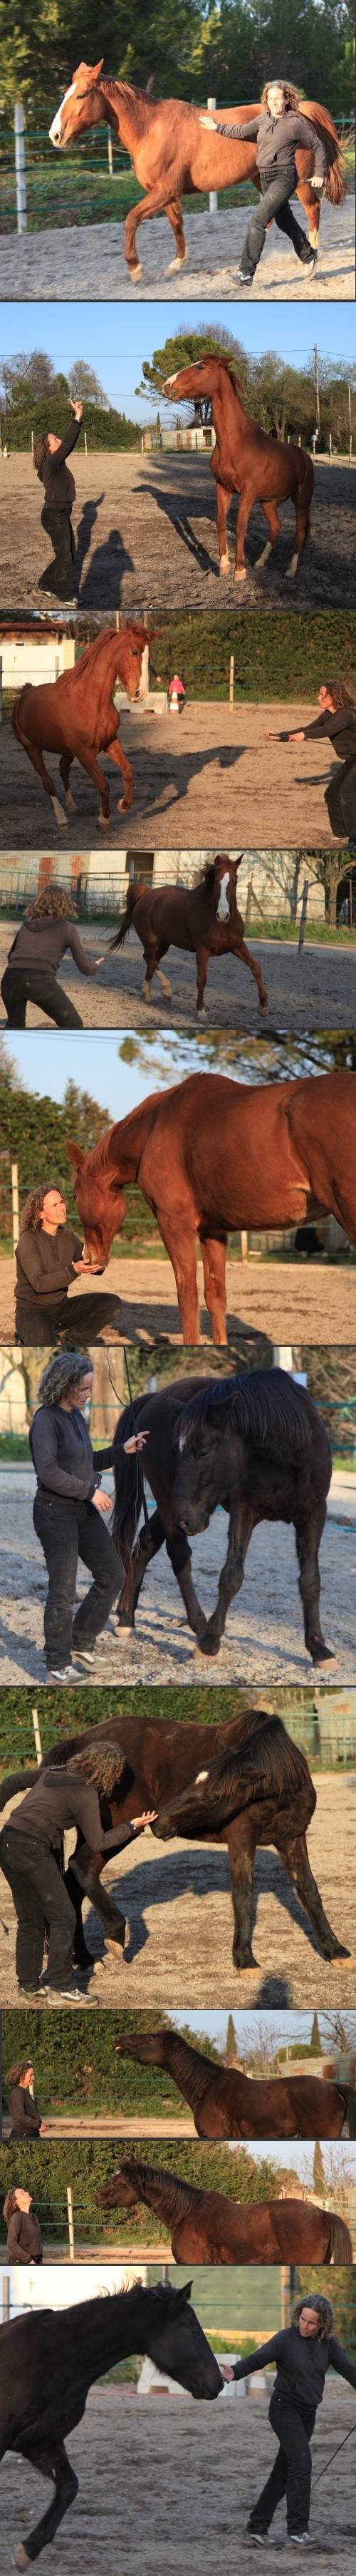 equi-coaching horse-coaching hippo-coaching